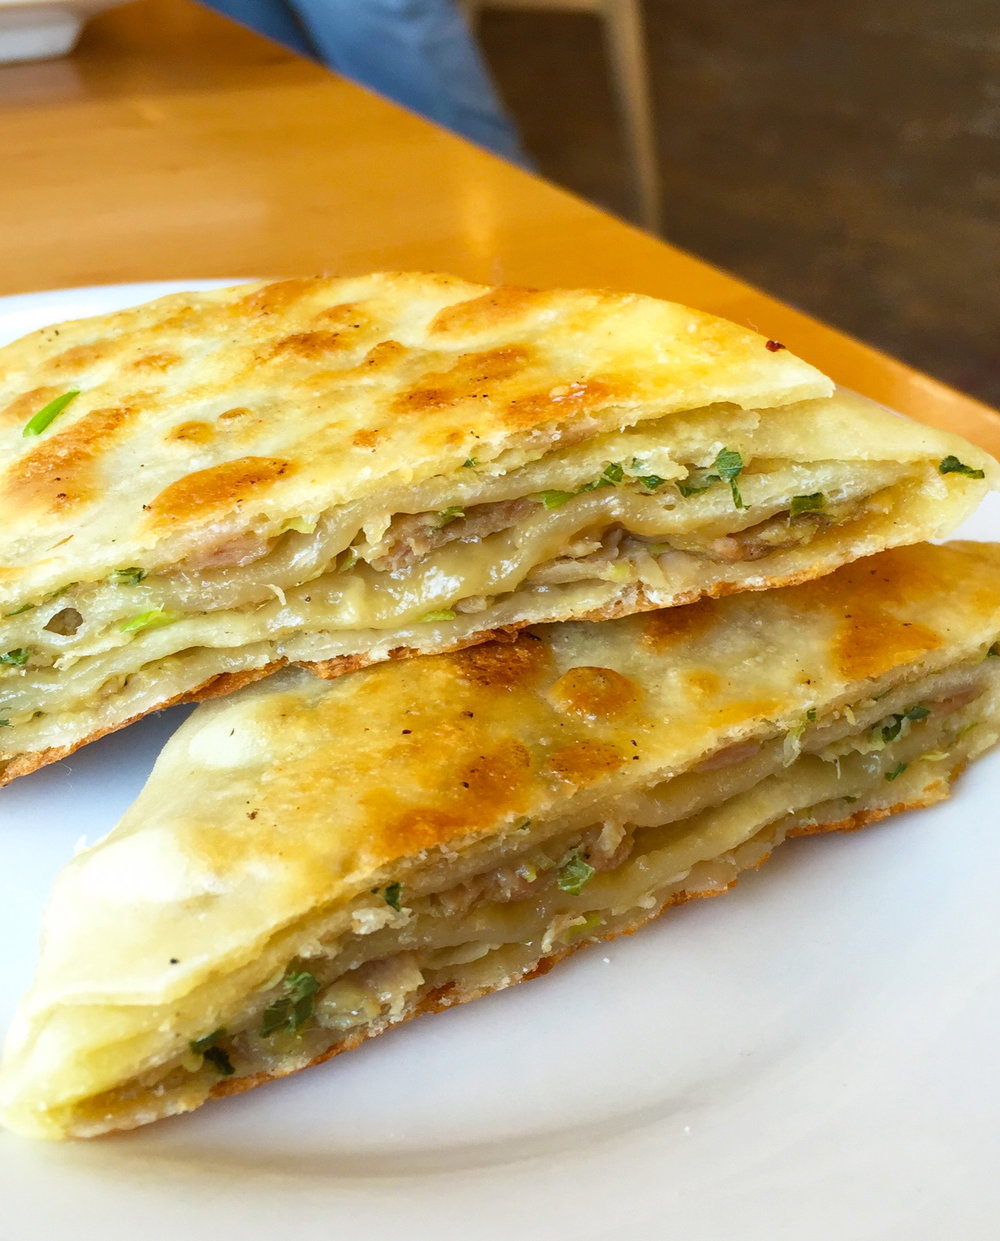 LAYERED PORK PANCAKE - Kurobuta Pork, Scallions.